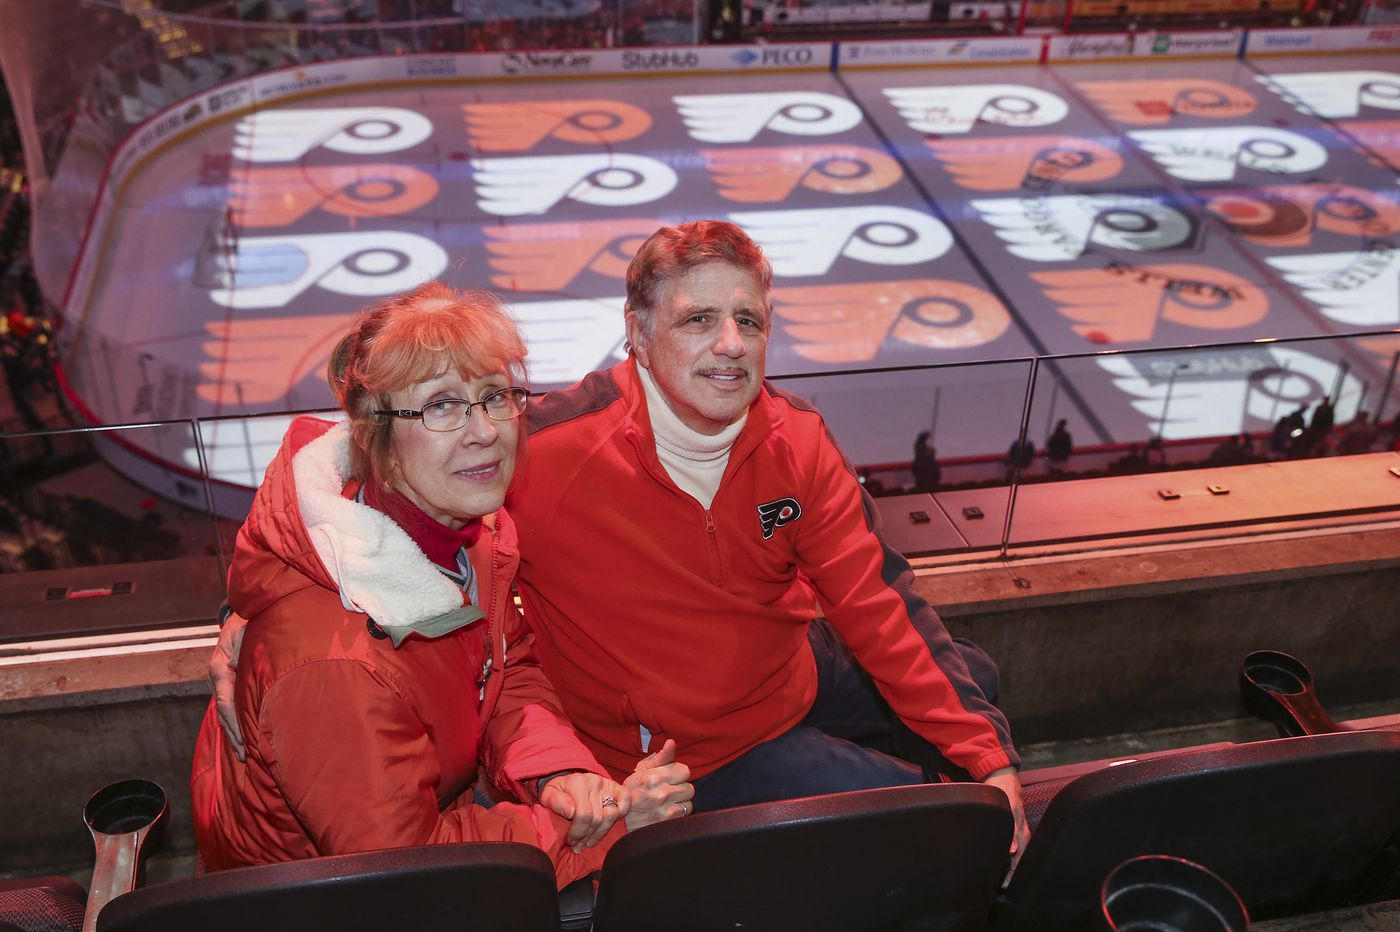 Fifty-Eight Years in, This Springfield Man Remains a Passionate Flyers Fan